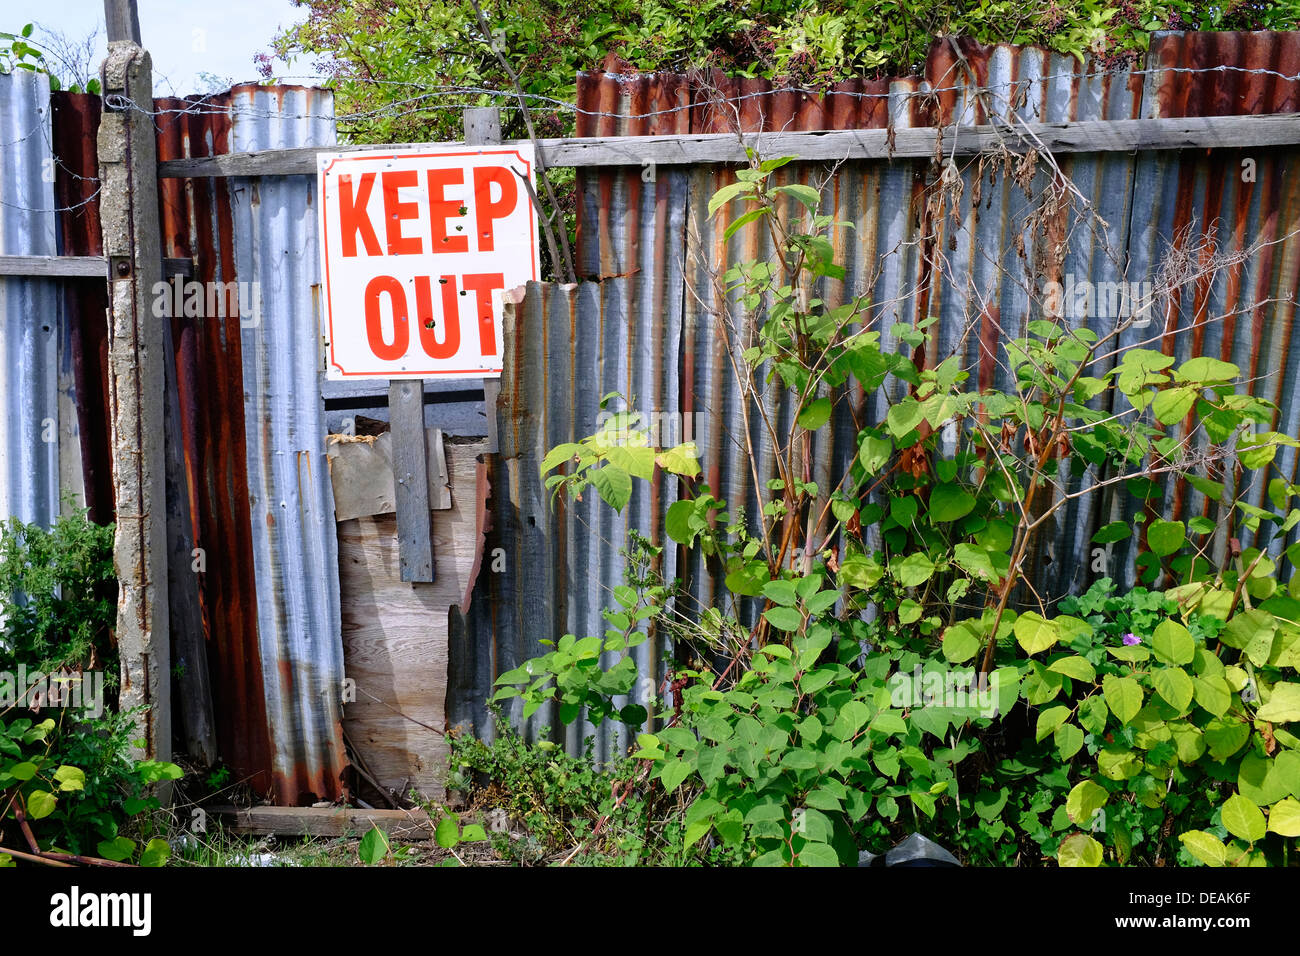 Keep Out warning sign, Essex, UK - Stock Image